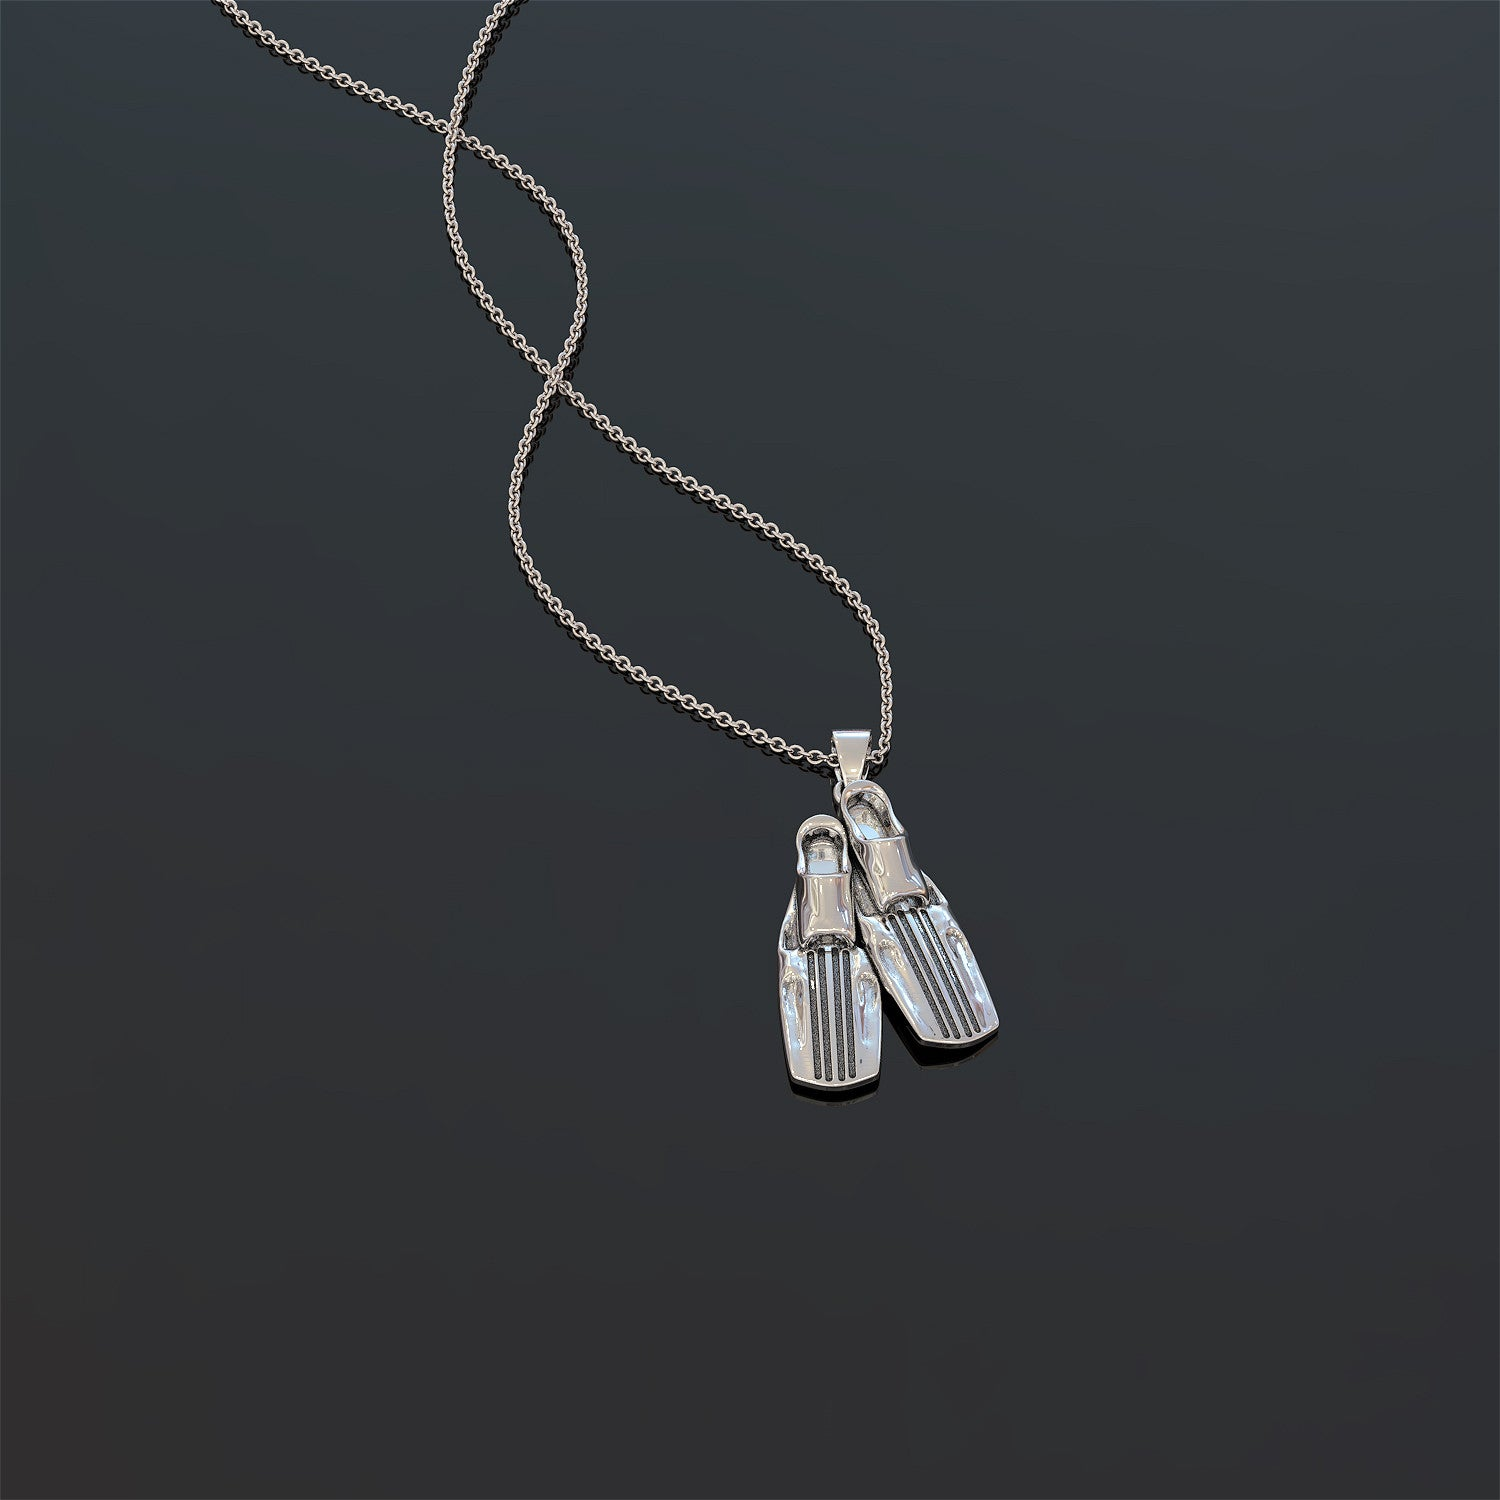 Scuba Design Necklace